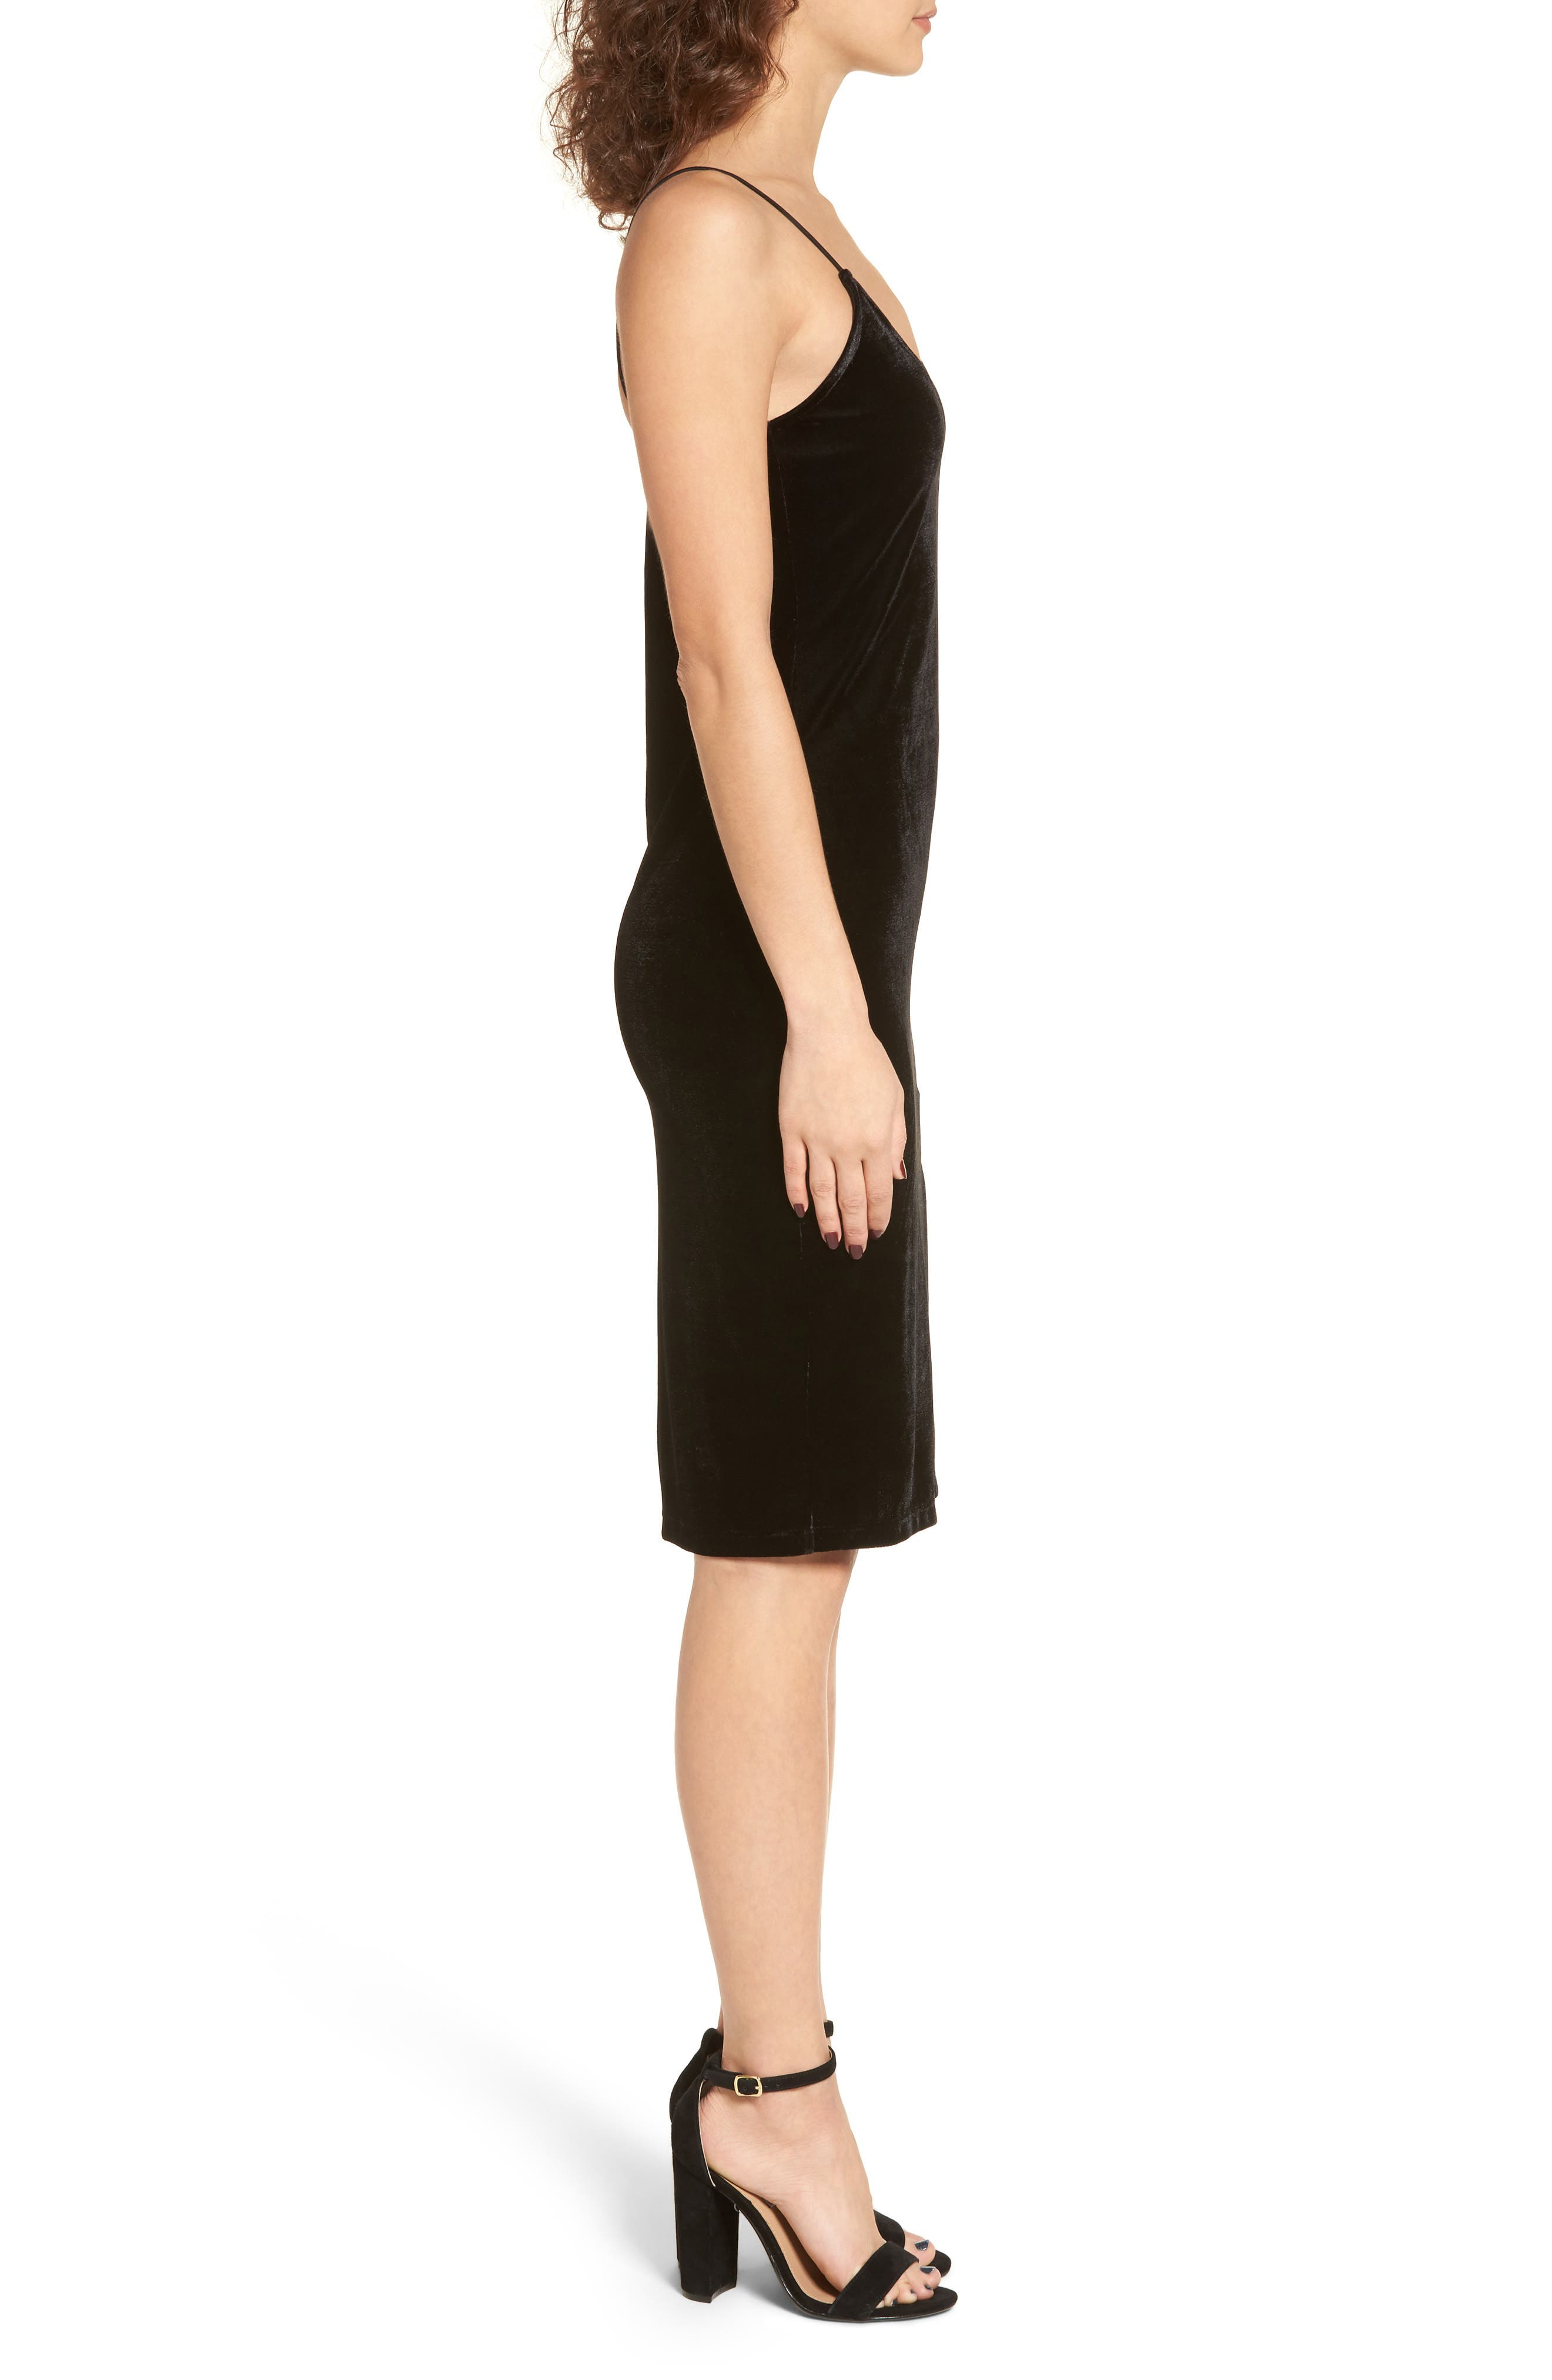 Blume Sheath Dress,                             Alternate thumbnail 3, color,                             001